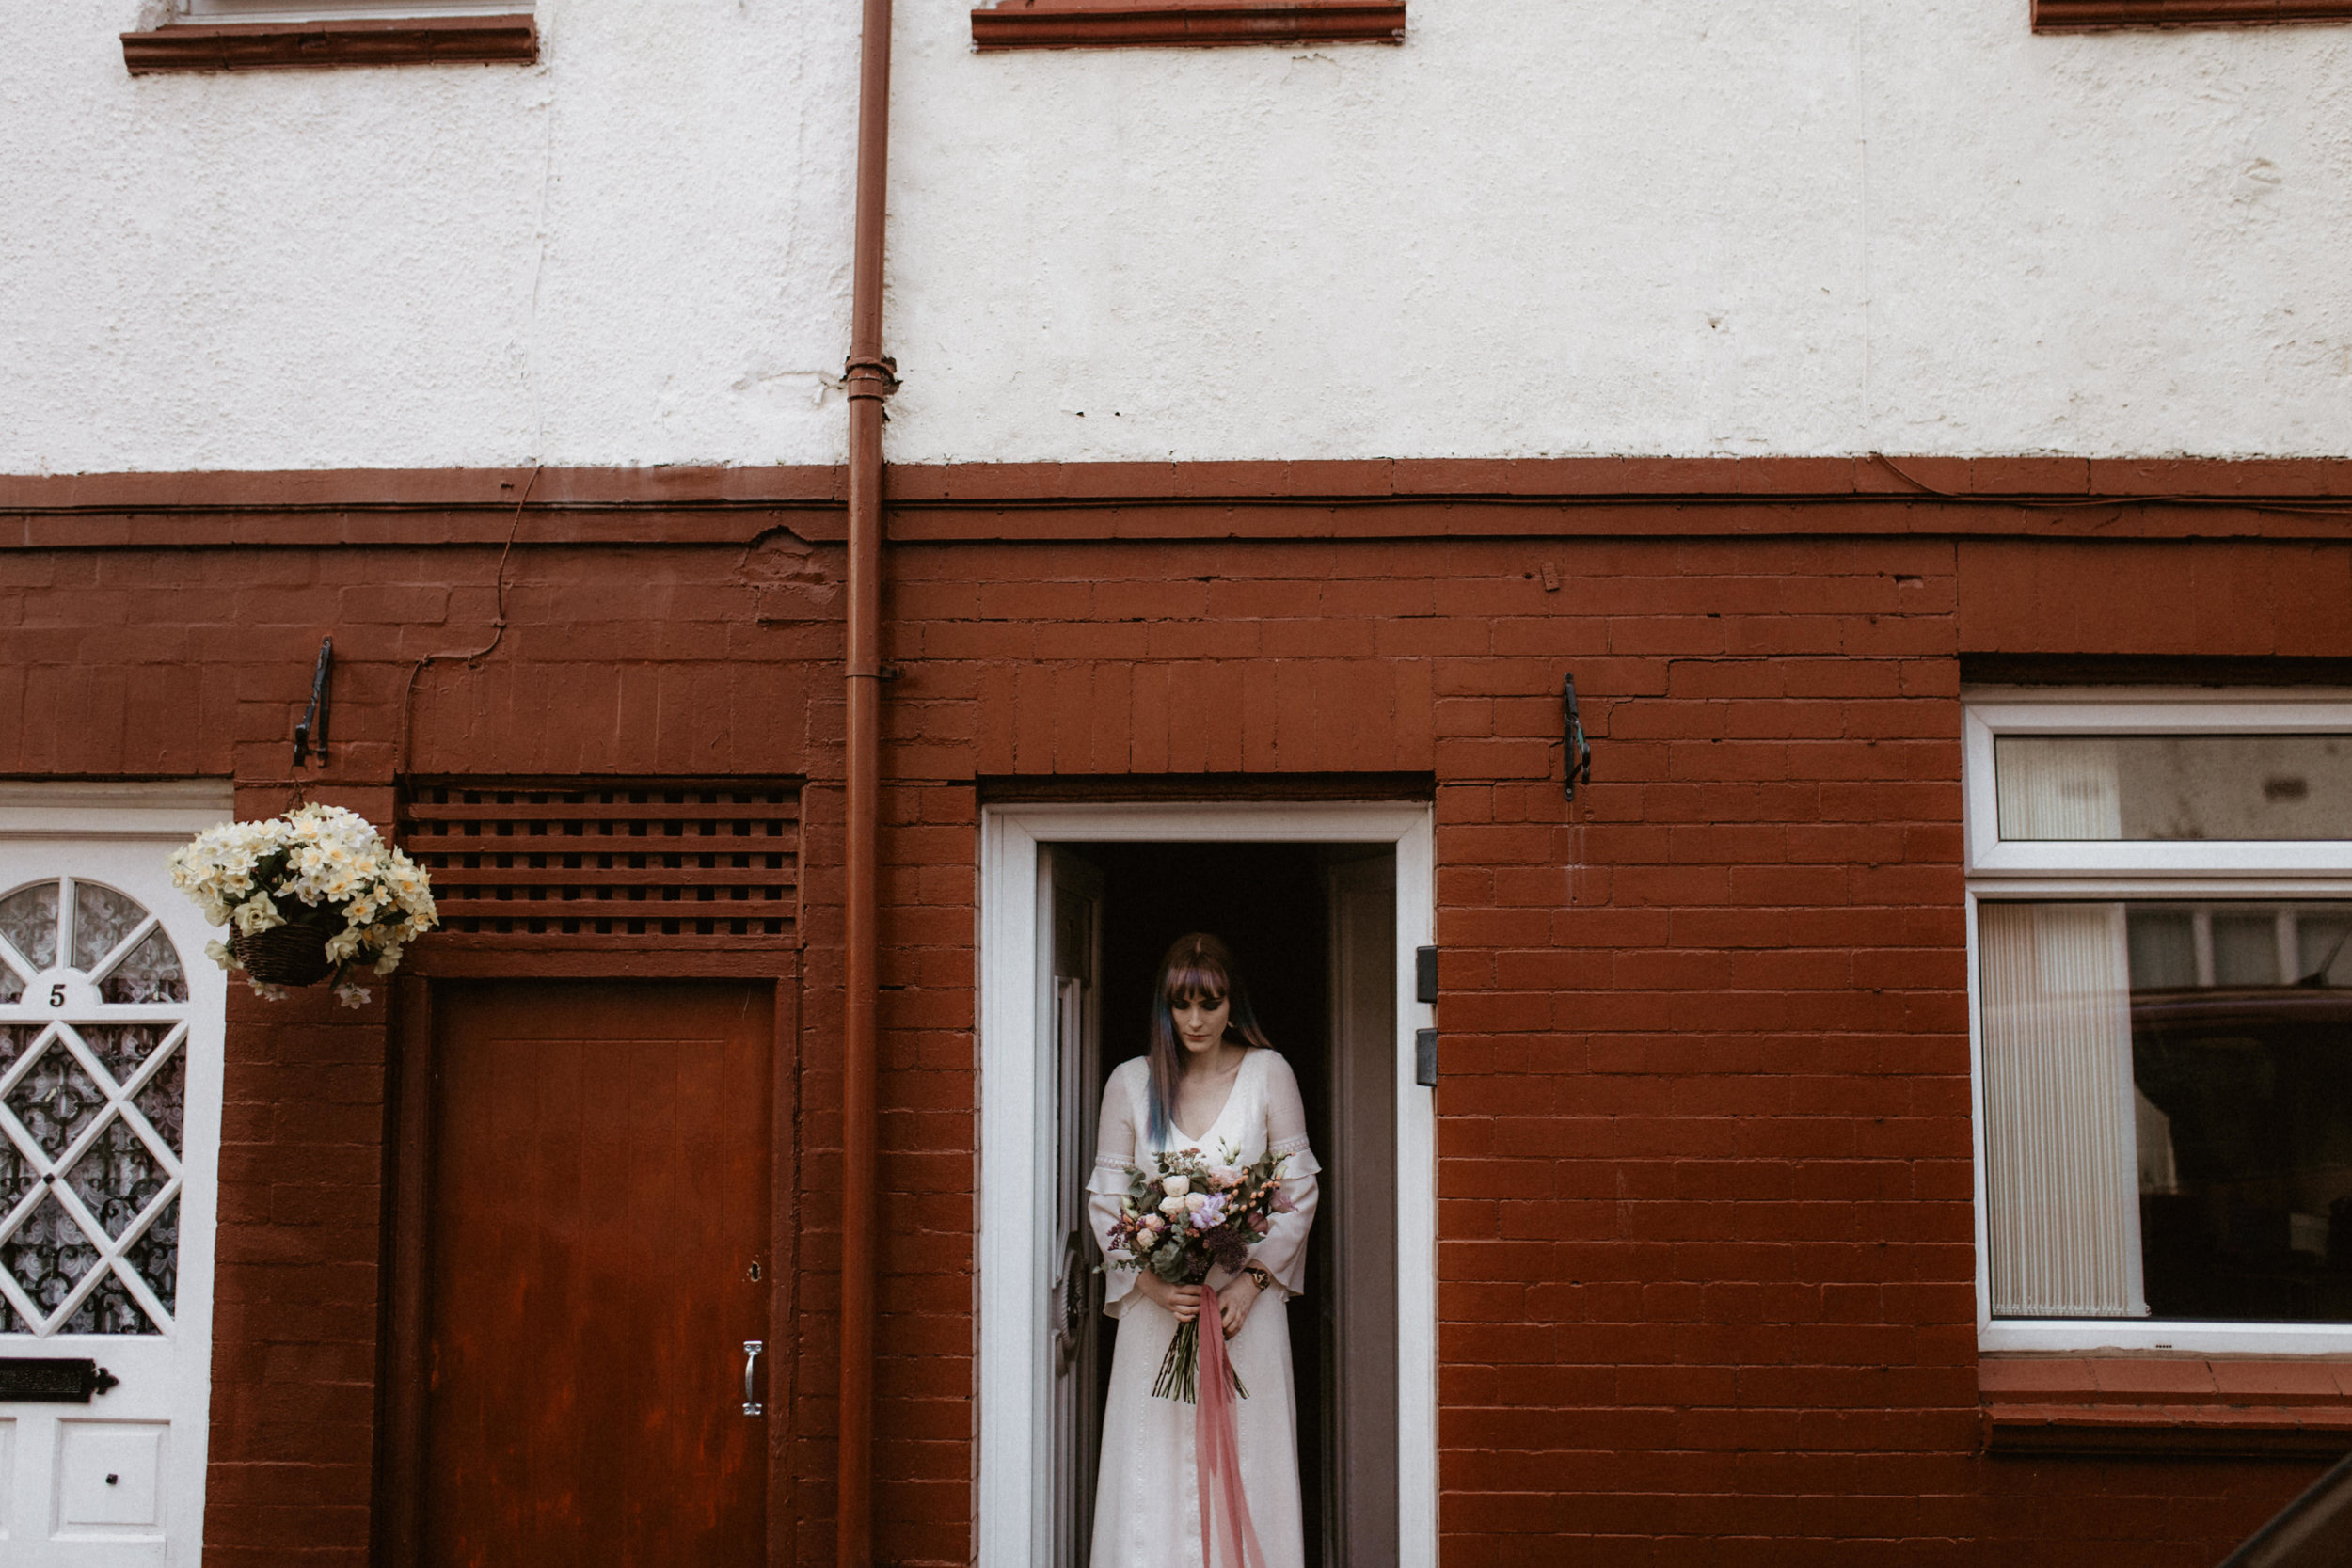 alt_thenortherngirlphotography_liverpool_couples_weddingphotographer_photographer_wedding_boda_fotografodebodas_fotografobodasbarcelona_bodaindie_bodasconestilo_antique-65.jpg